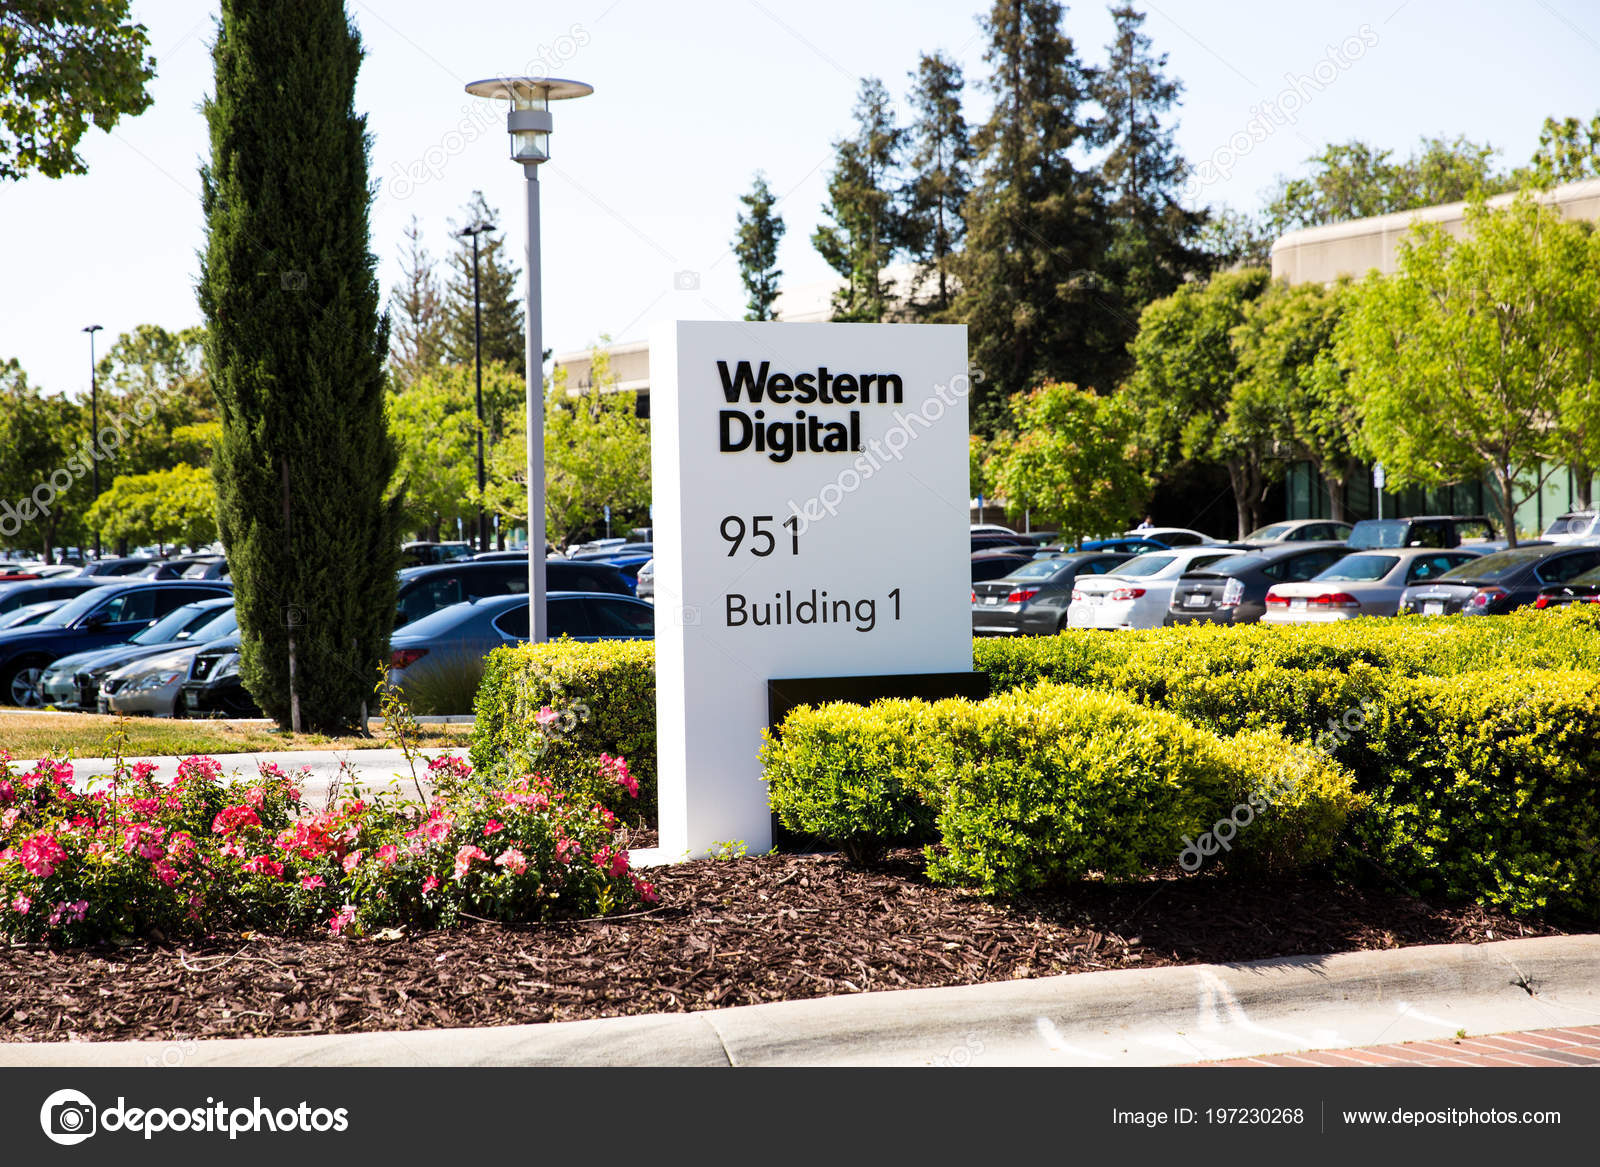 Milpitas, CA, USA   May 21, 2018: Building Of A Western Digital Corporation  Office. WDC, An American Computer Data Storage Company And The Largest  Computer ...